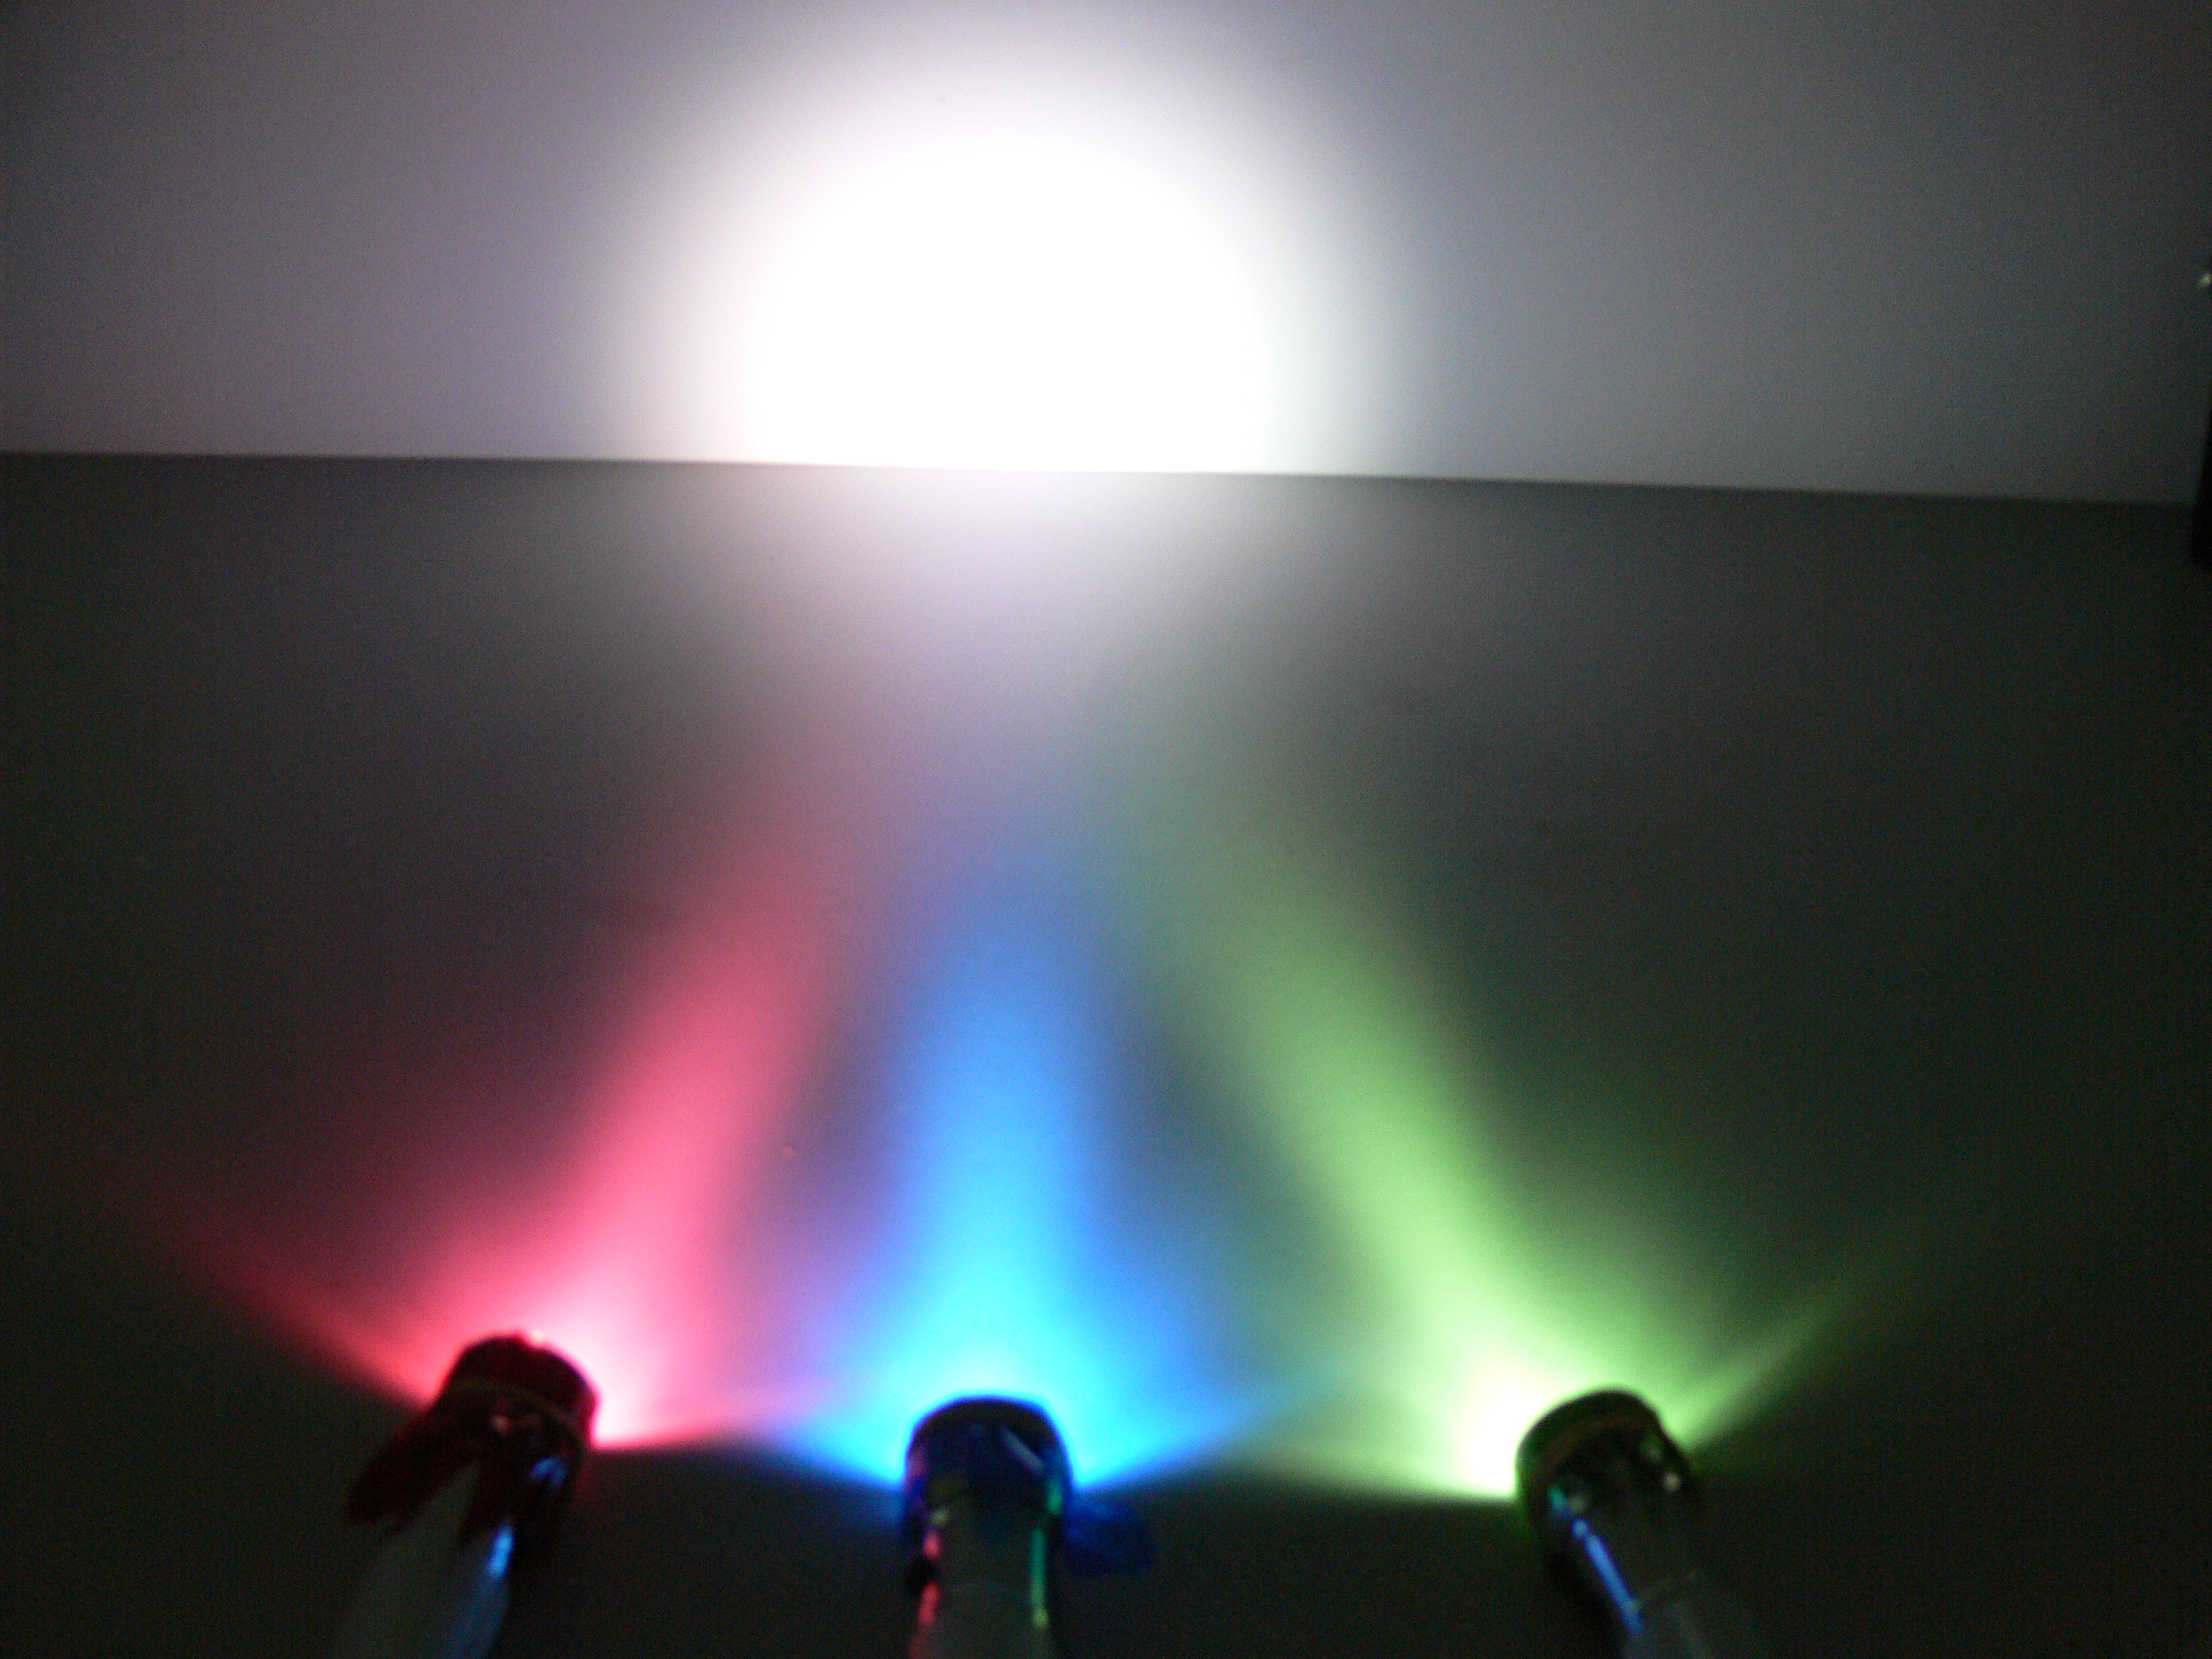 three torches covered with cellophane one red, one blue and one green all pointing into the same spot on the wall